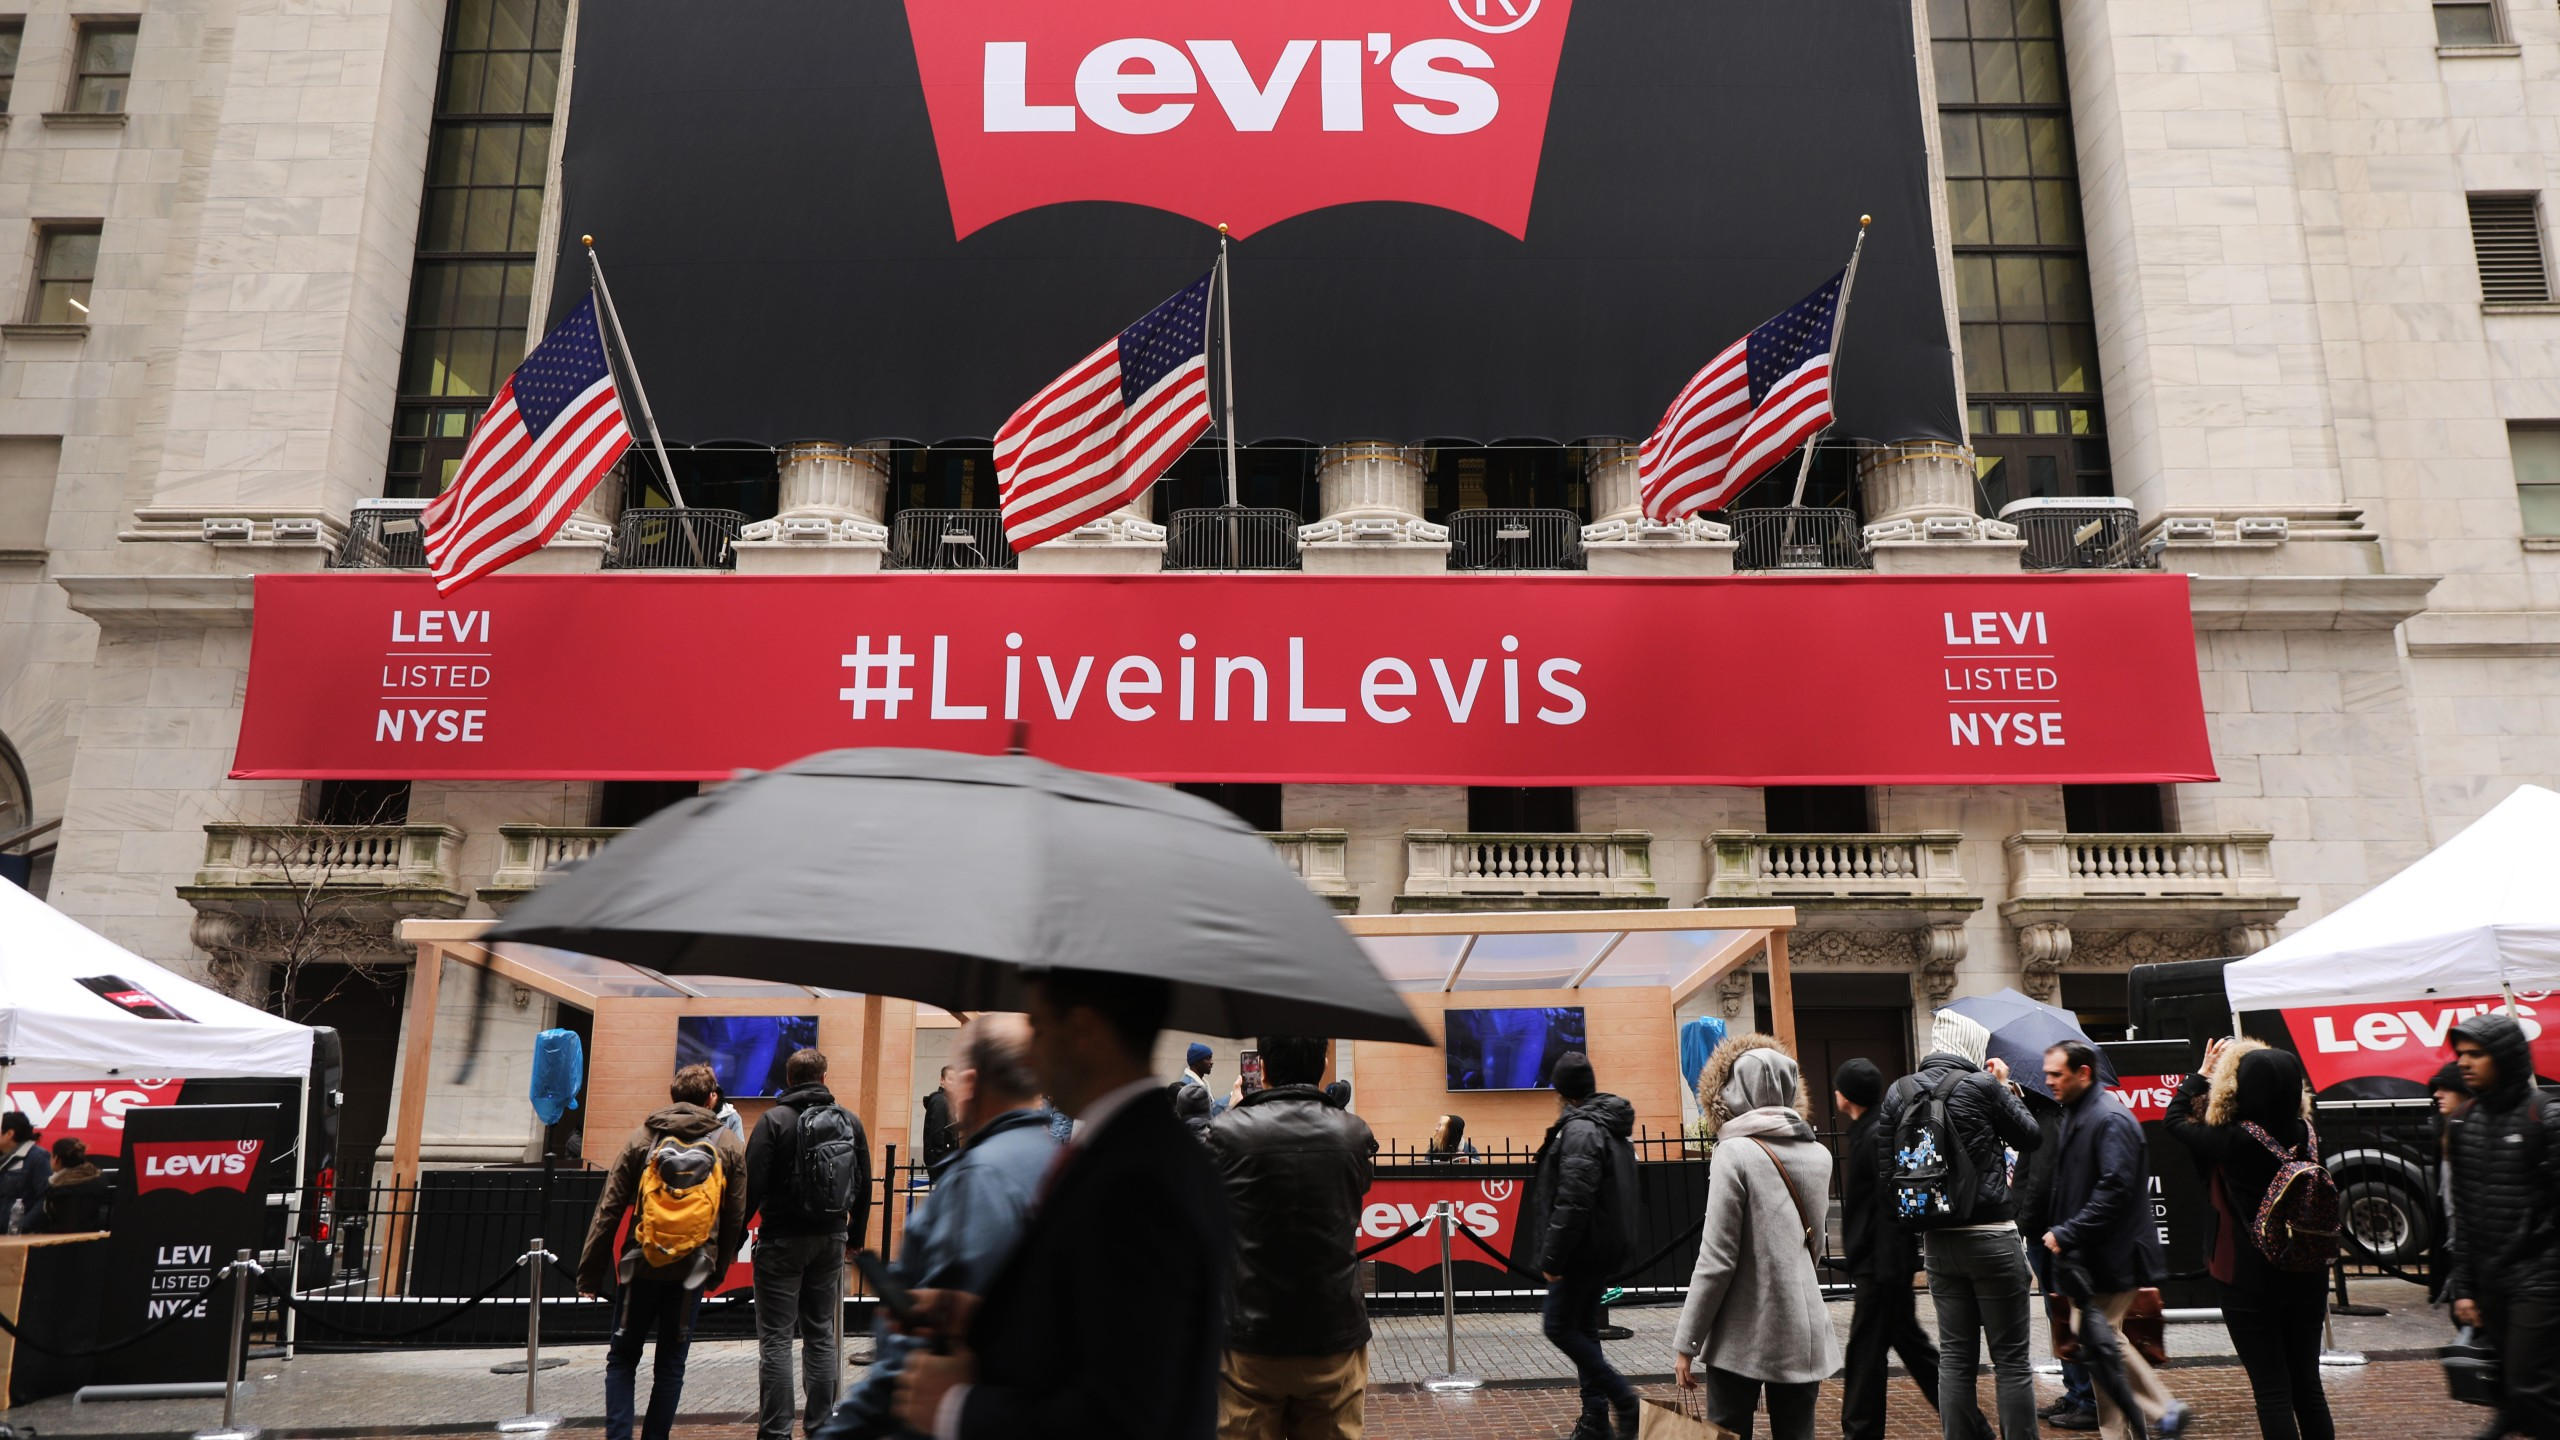 A Levi's banner hangs from the New York Stock Exchange on the day that Levi Strauss has returned to the stock market with an IPO on March 21, 2019 in New York City. (Credit: Spencer Platt/Getty Images)